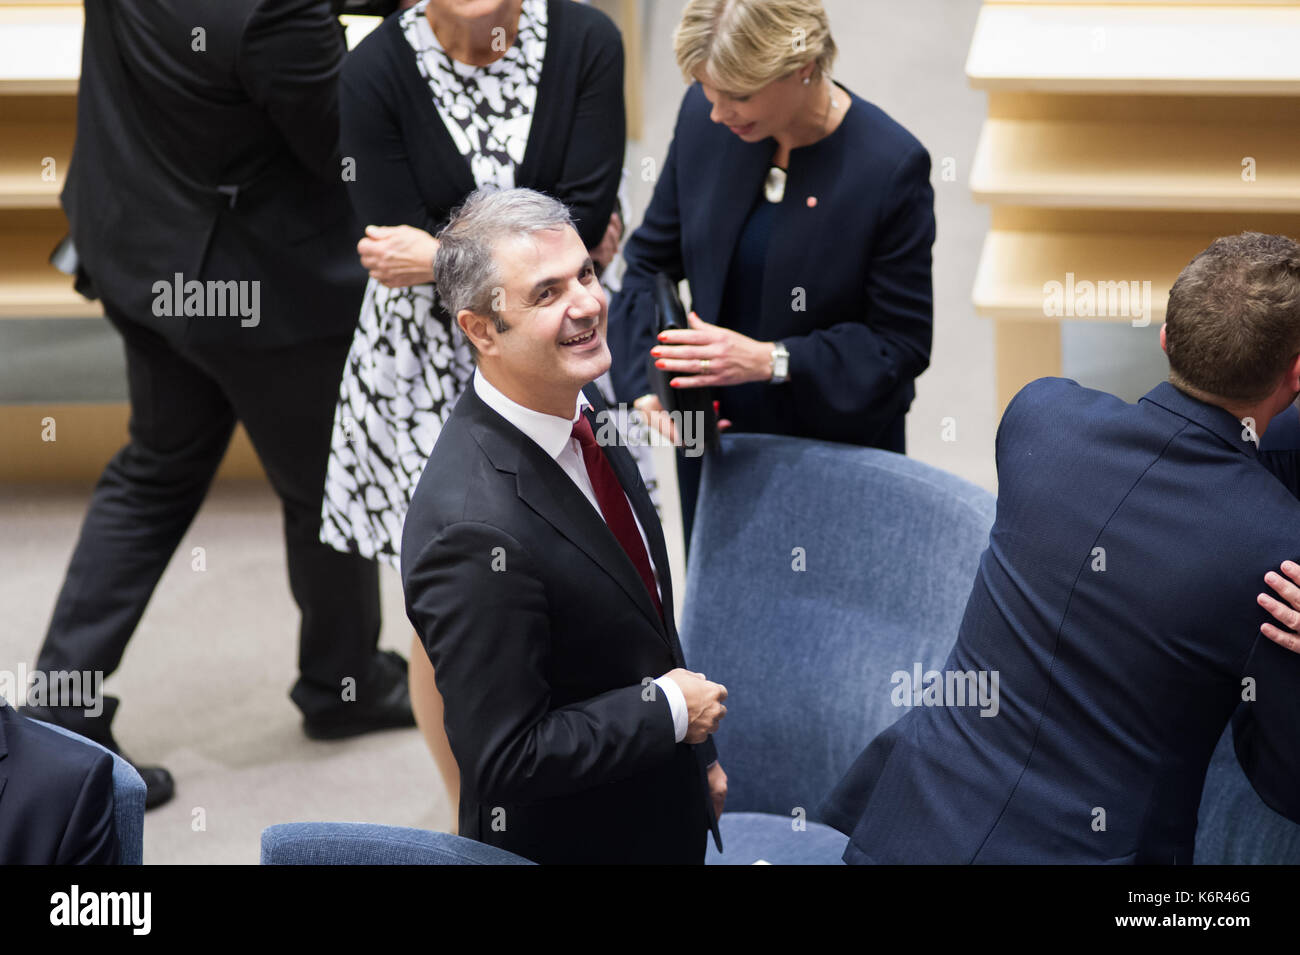 Stockholm, Sweden, 12th September, 2017. Ceremony in the Chamber at the opening of the Riksdag session.  Minister - Stock Image